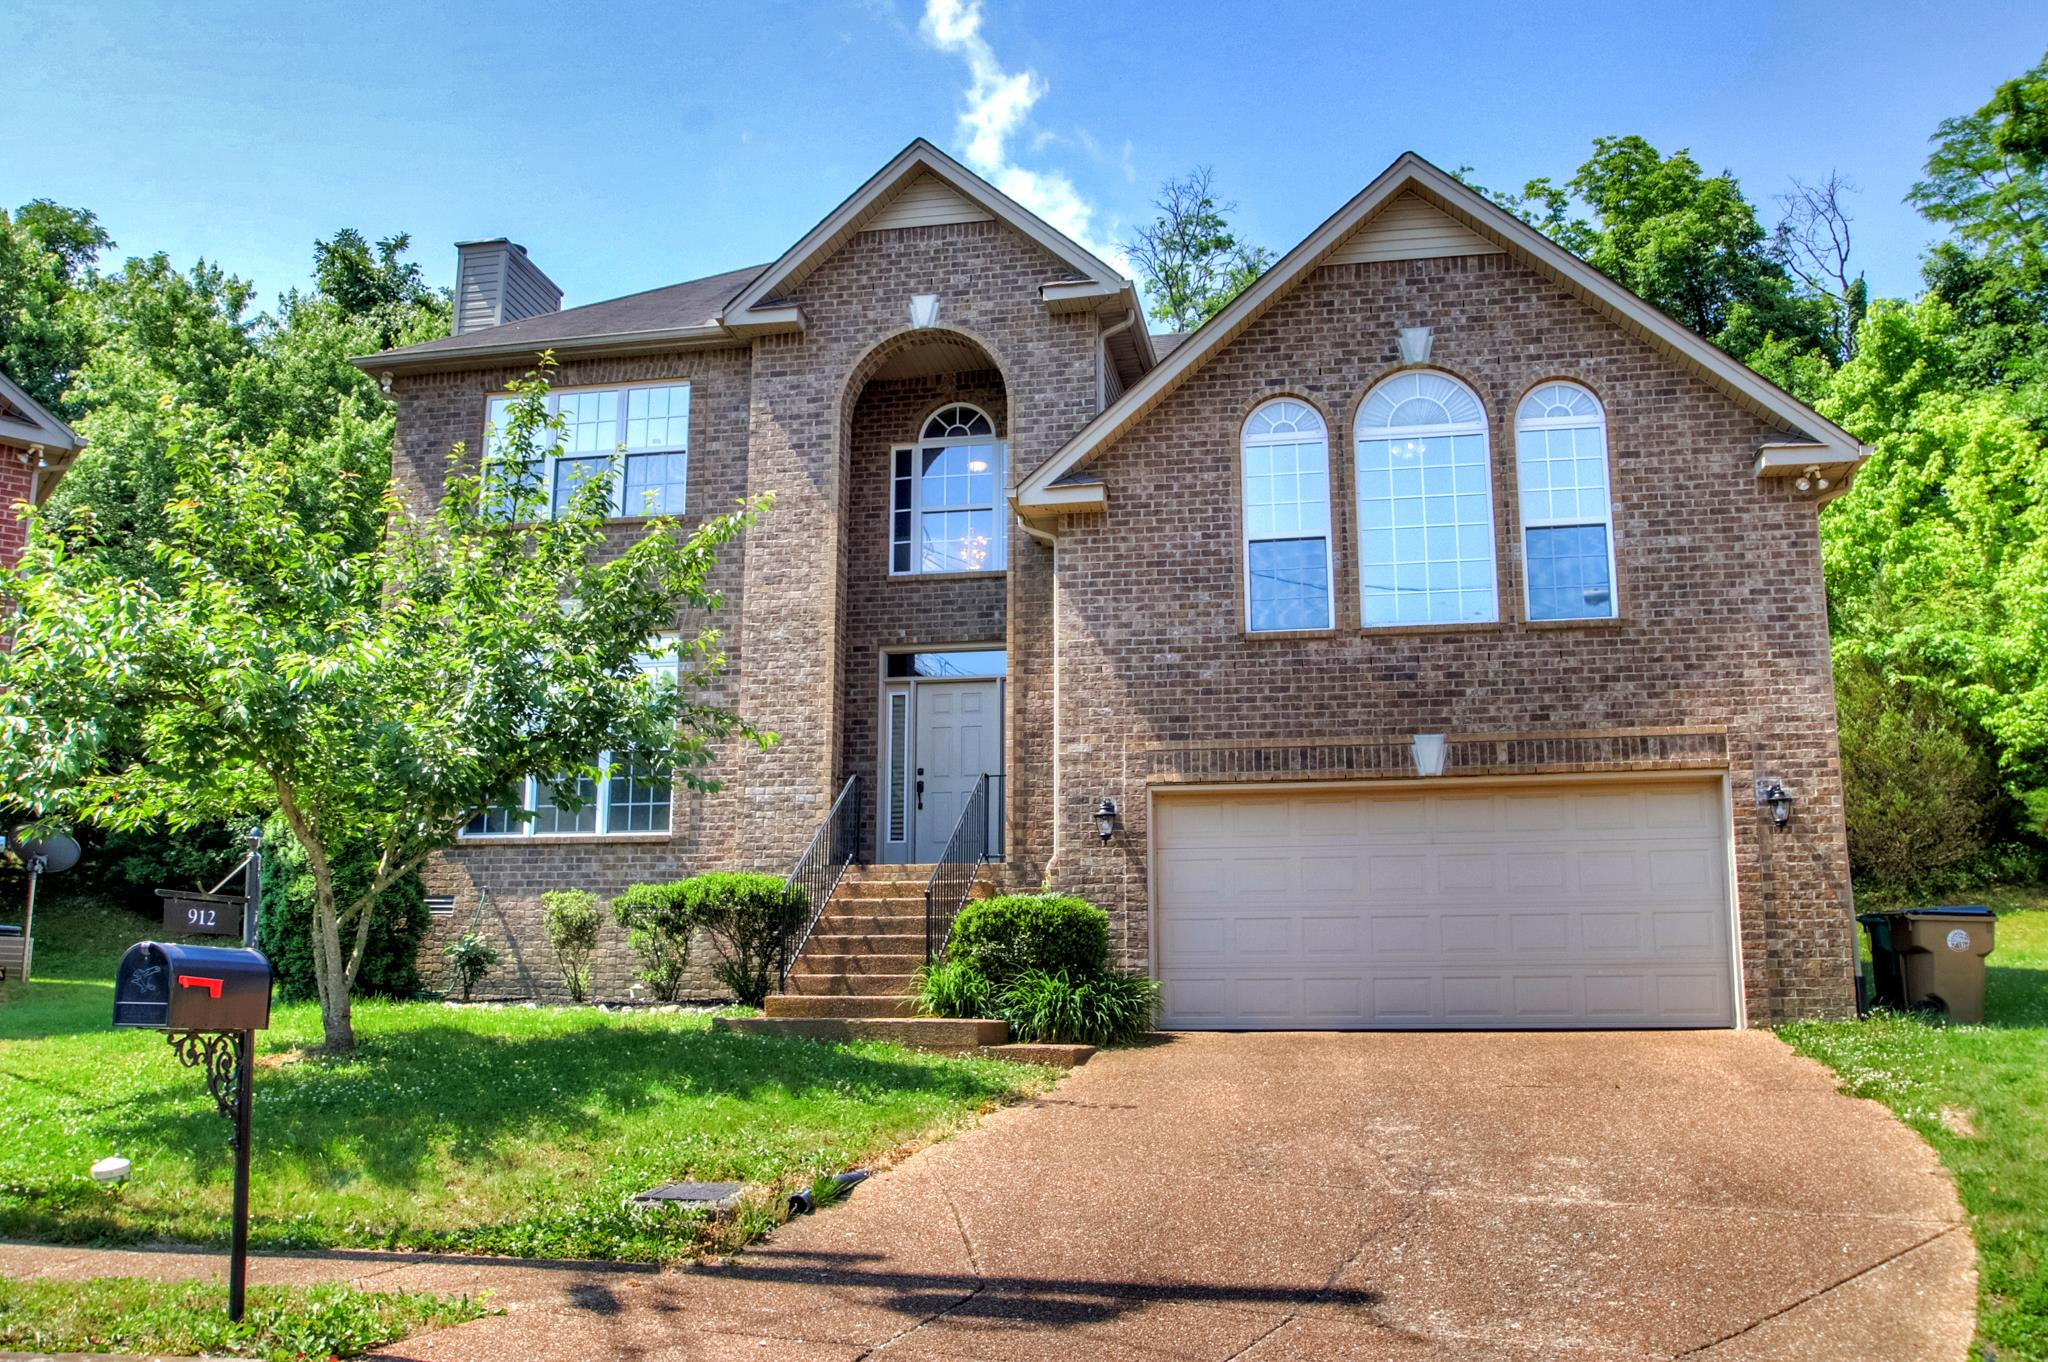 912 Creekedge Ct, Nashville-Antioch, Tennessee